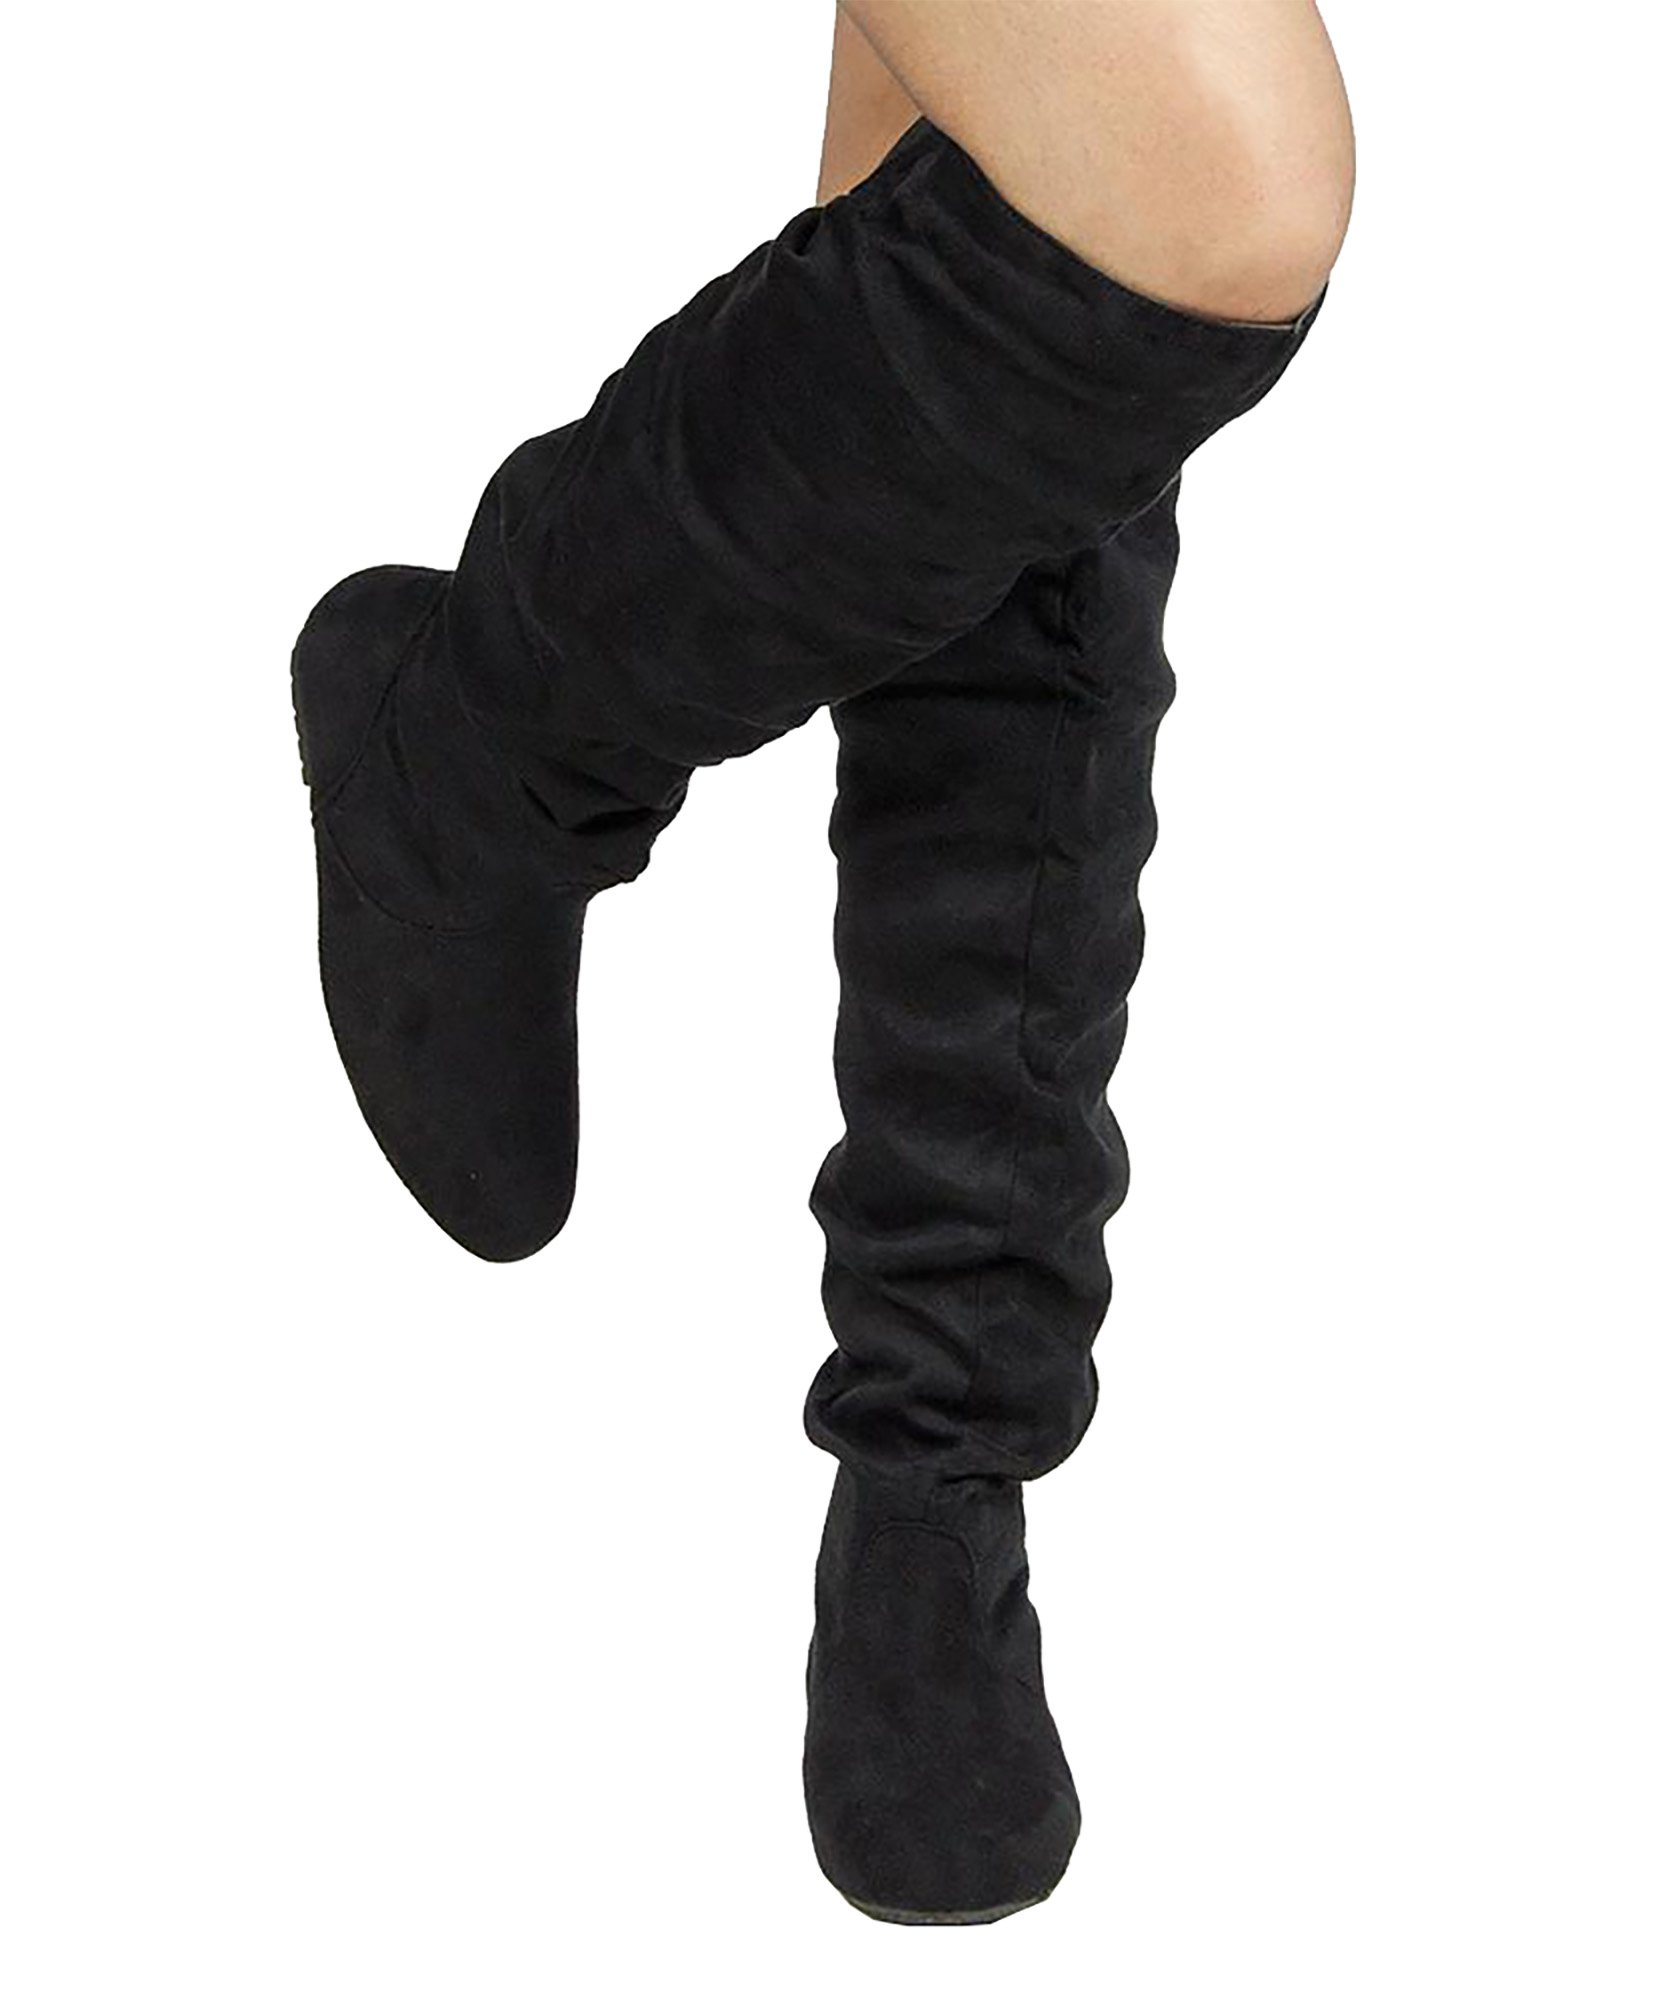 RF ROOM OF FASHION TrendHI-02 Over-The-Knee Boots (Black SU Size 7.5) by RF ROOM OF FASHION (Image #3)